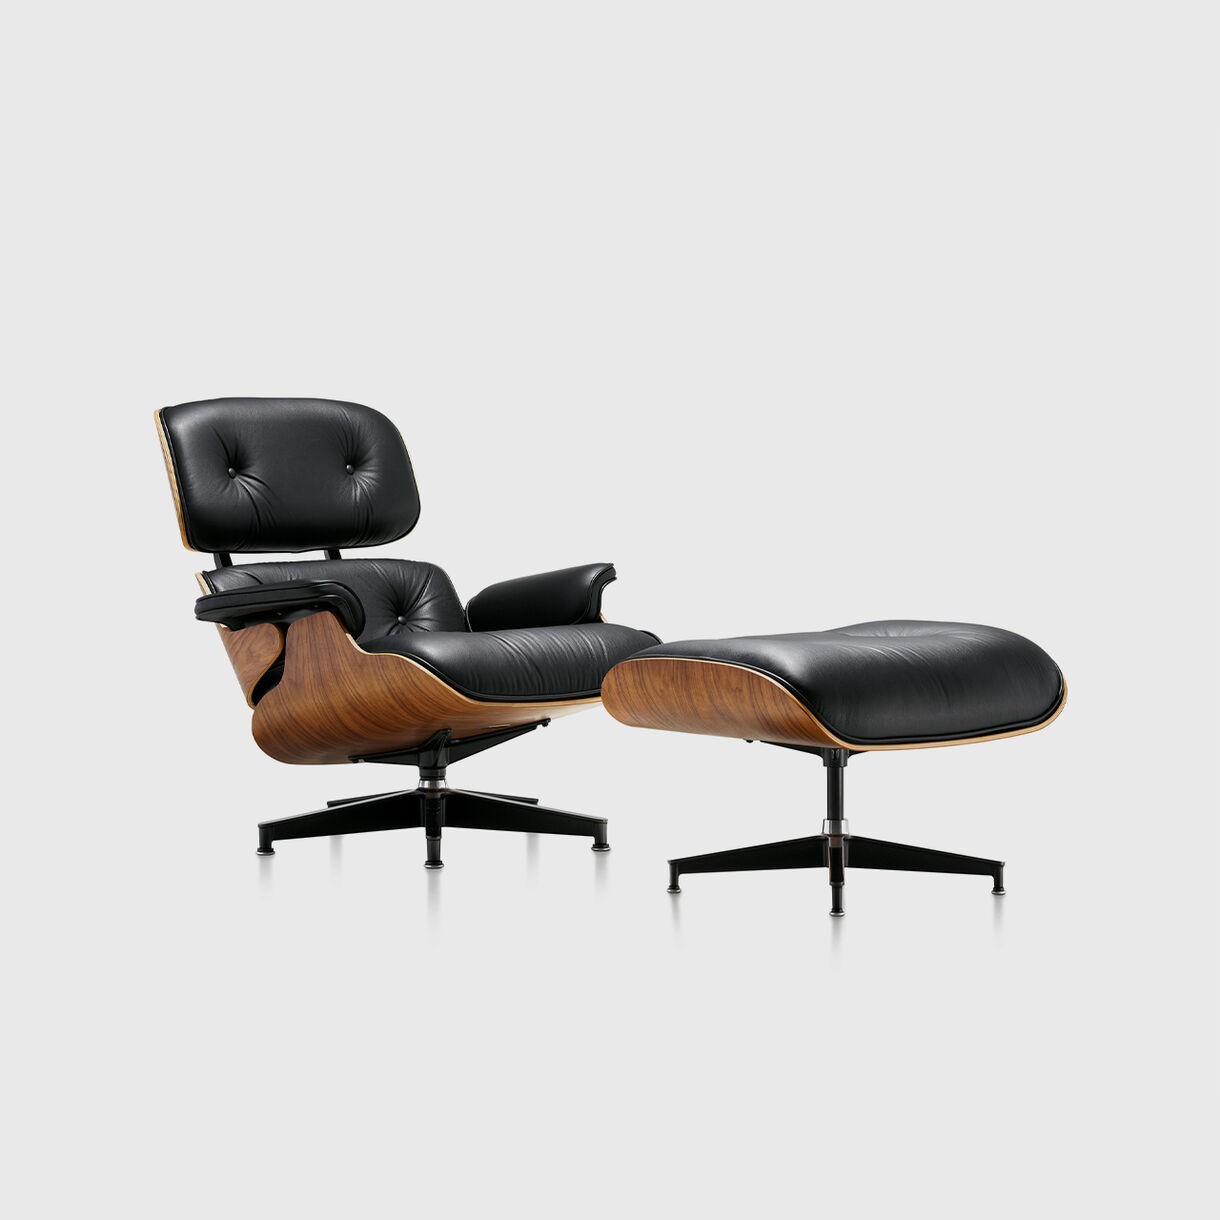 Eames Lounge Chair & Ottoman, Walnut & Black, Front Angled